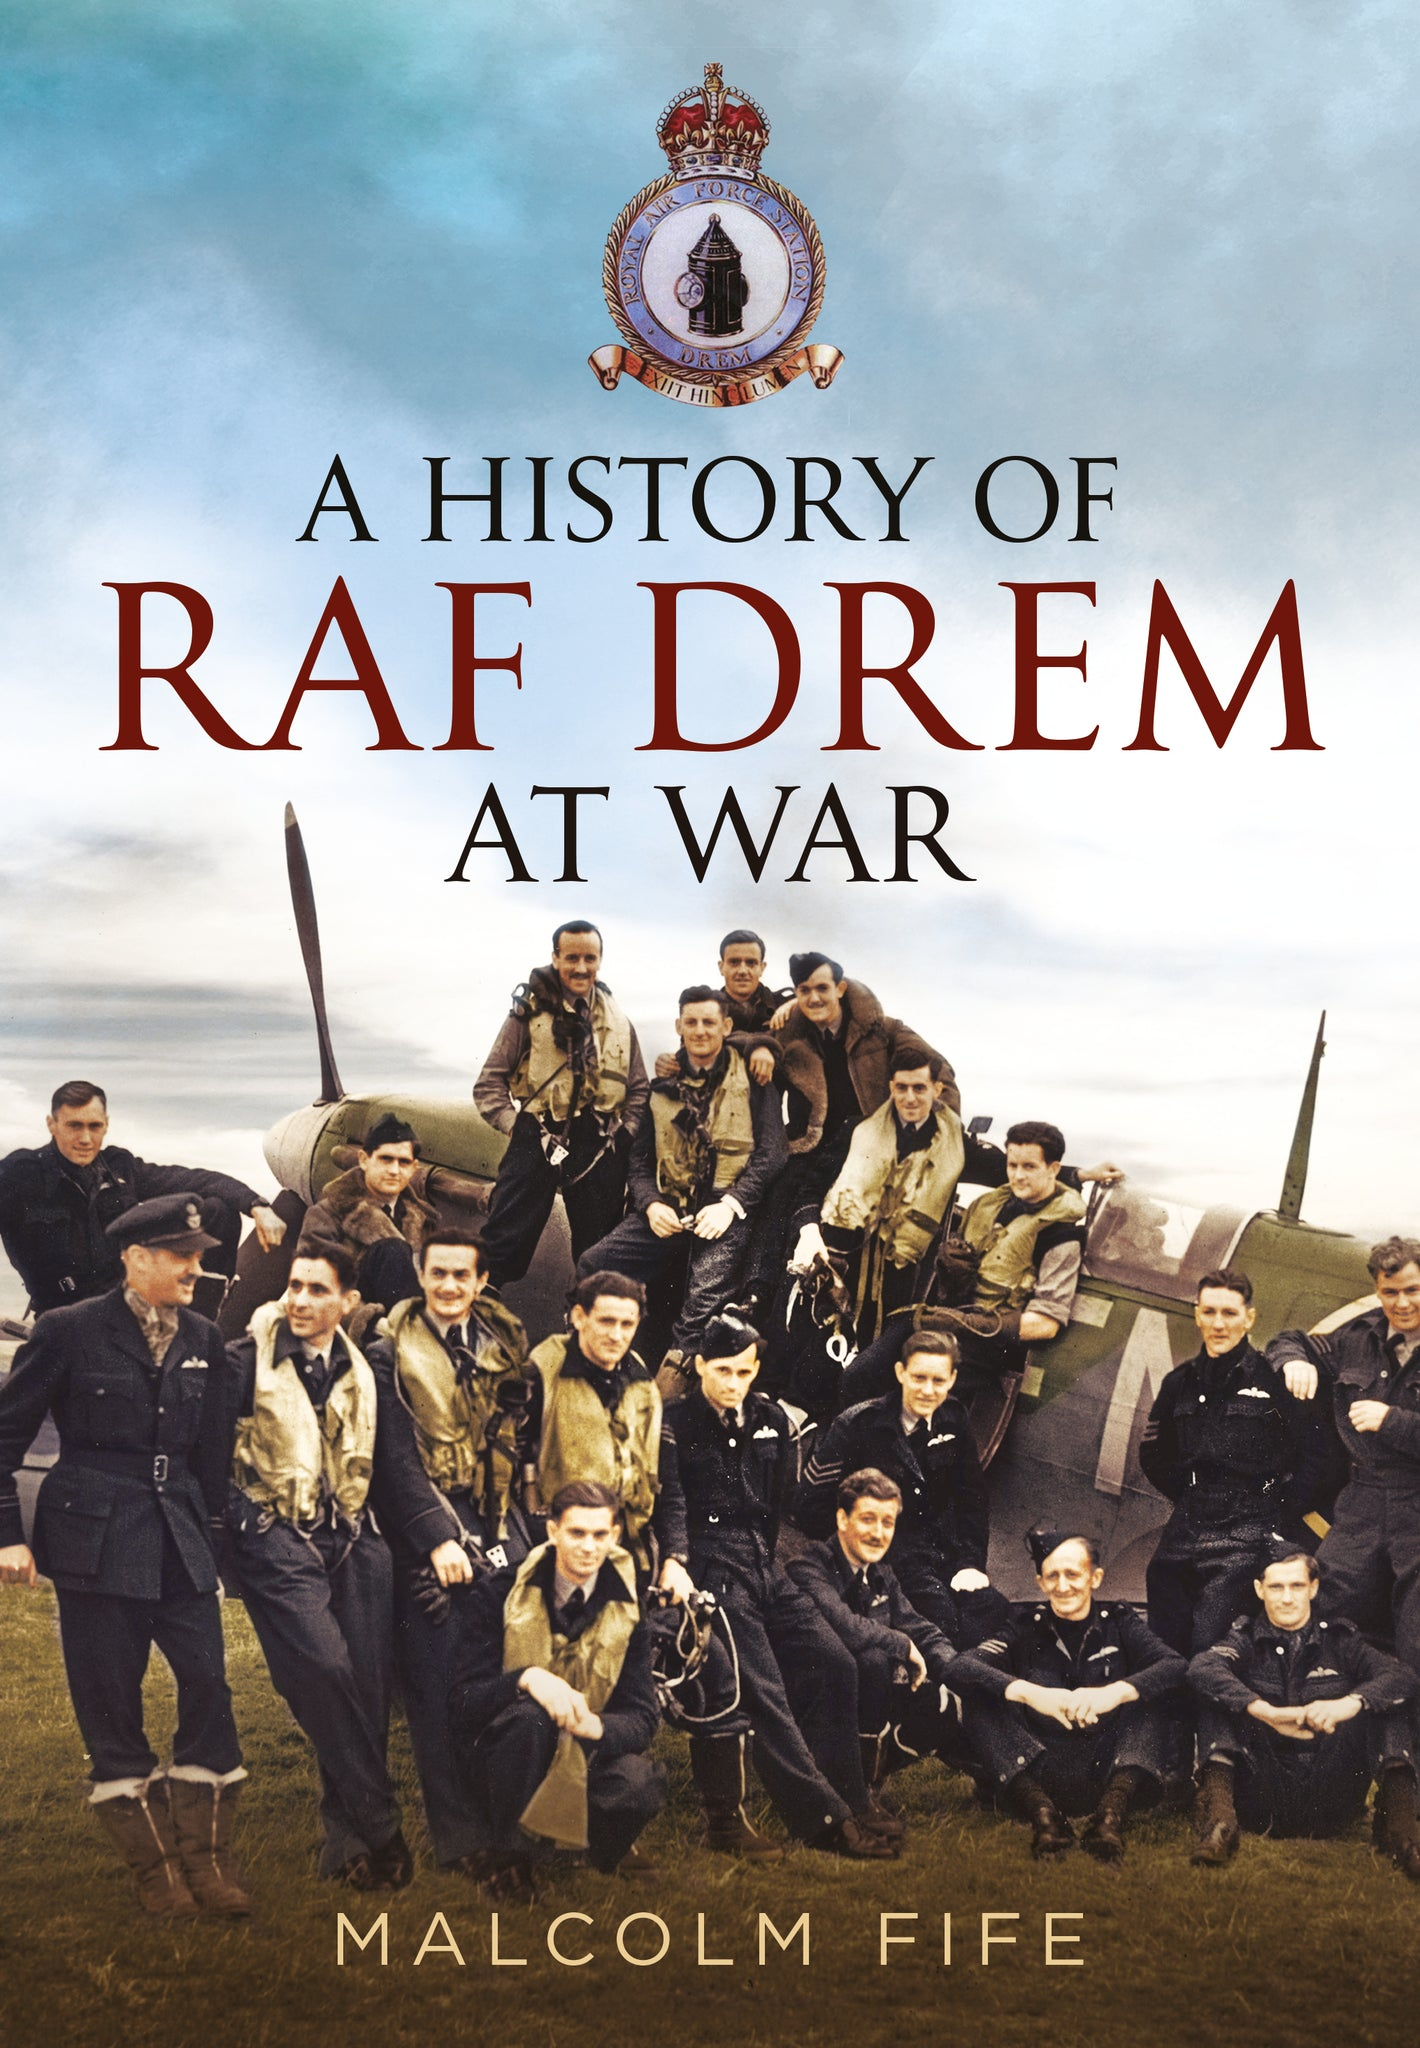 A History of RAF Drem at War - available from Fonthill Media